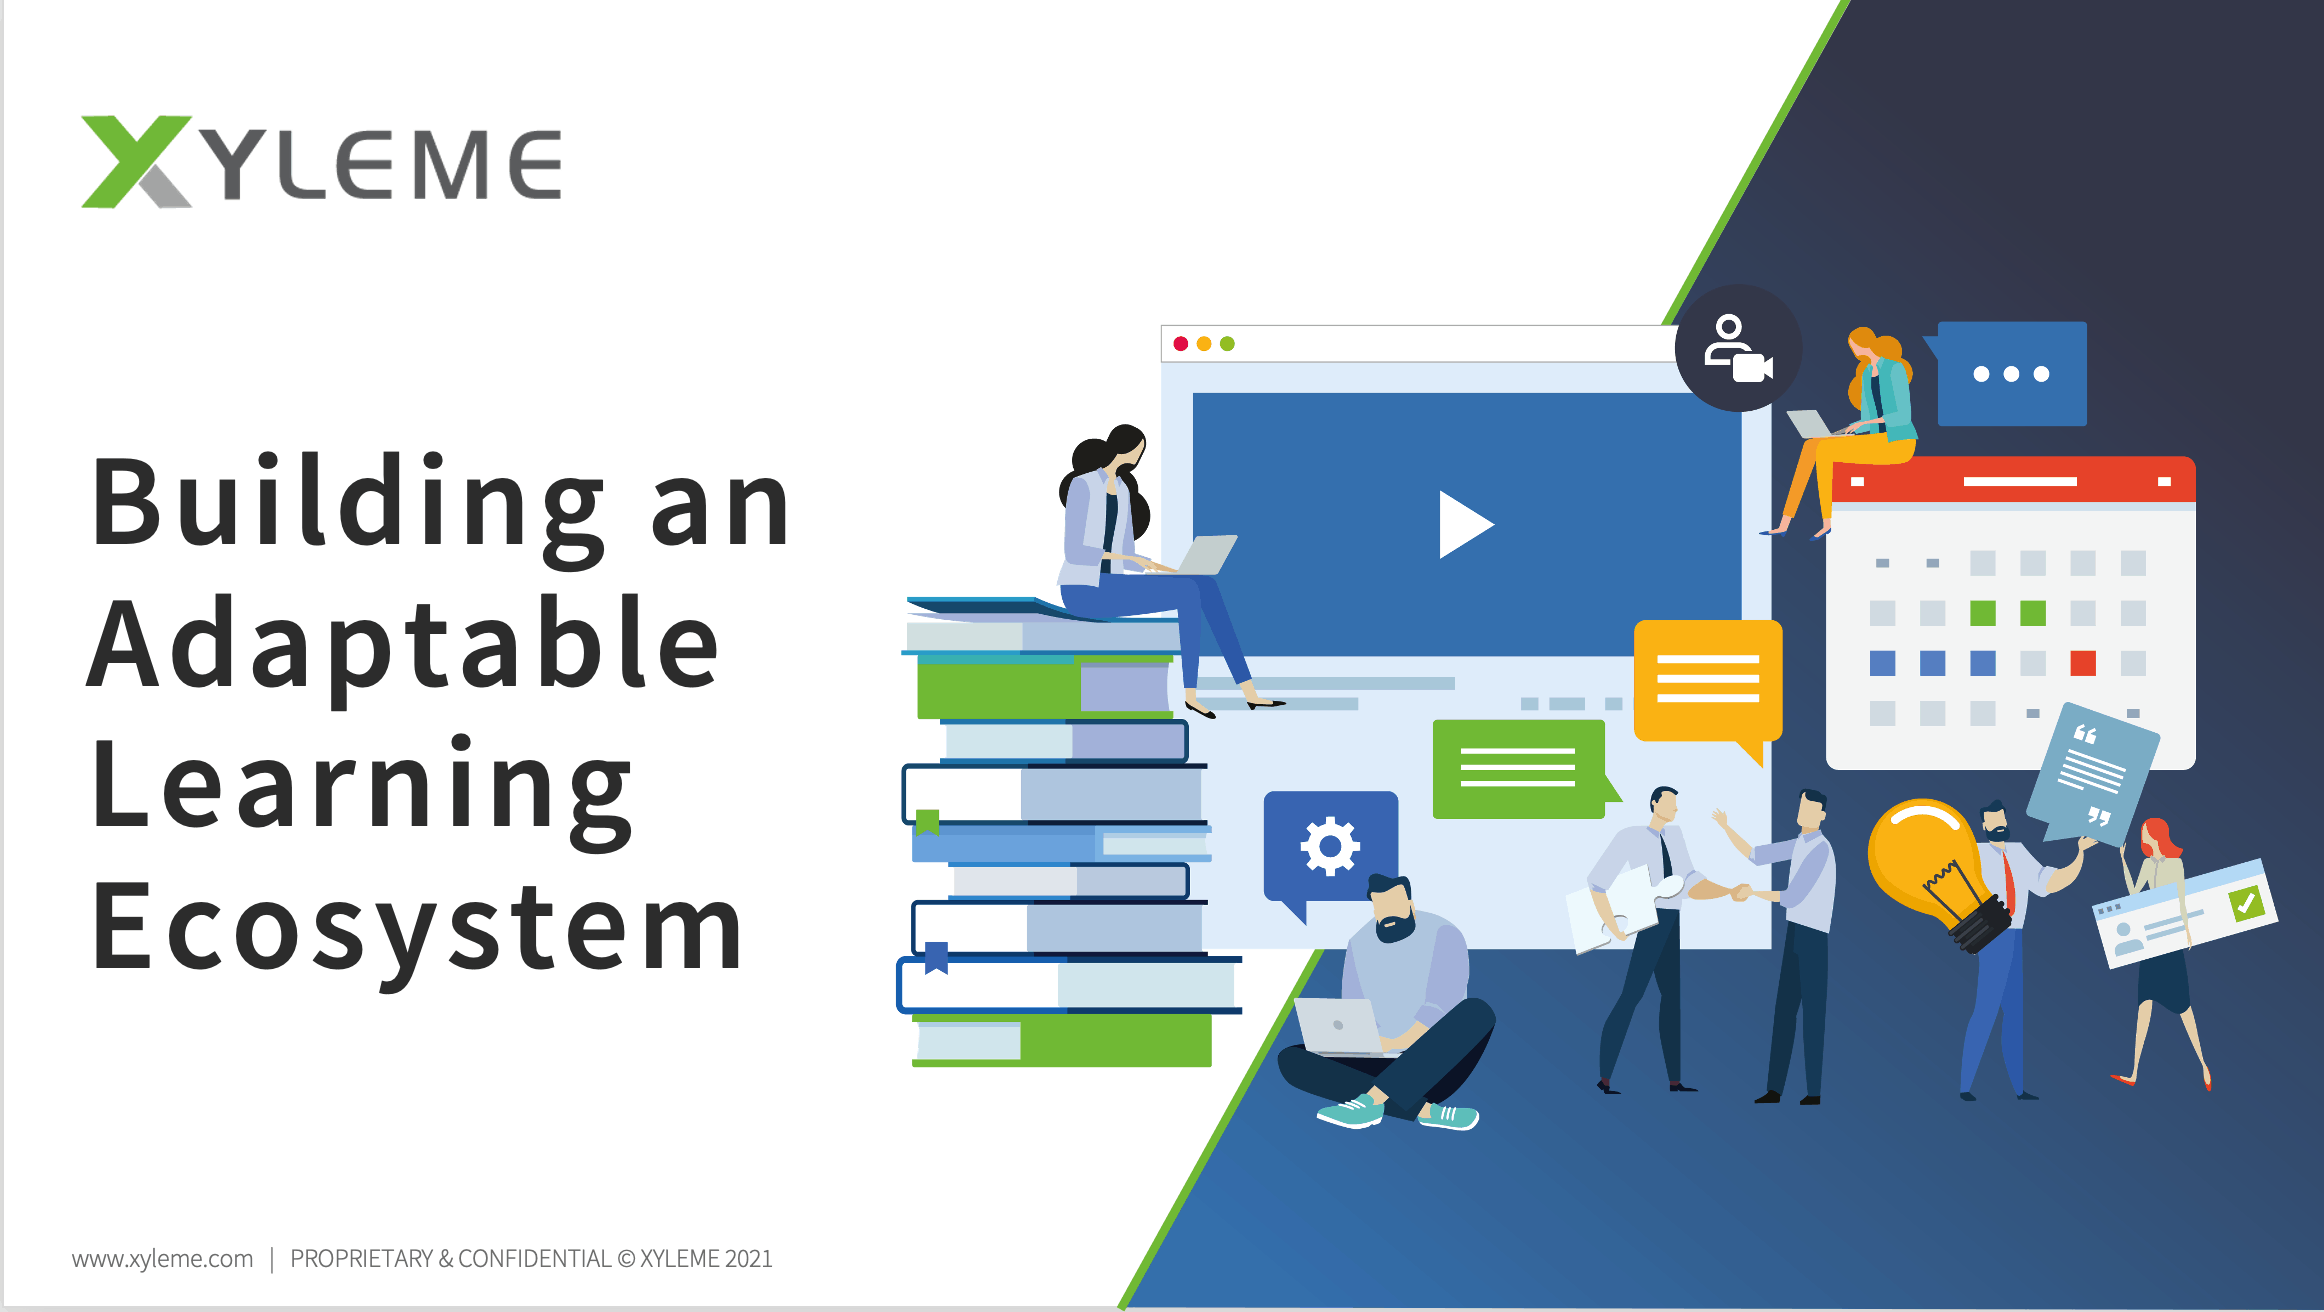 Webinar: Building an Adaptable Learning Ecosystem